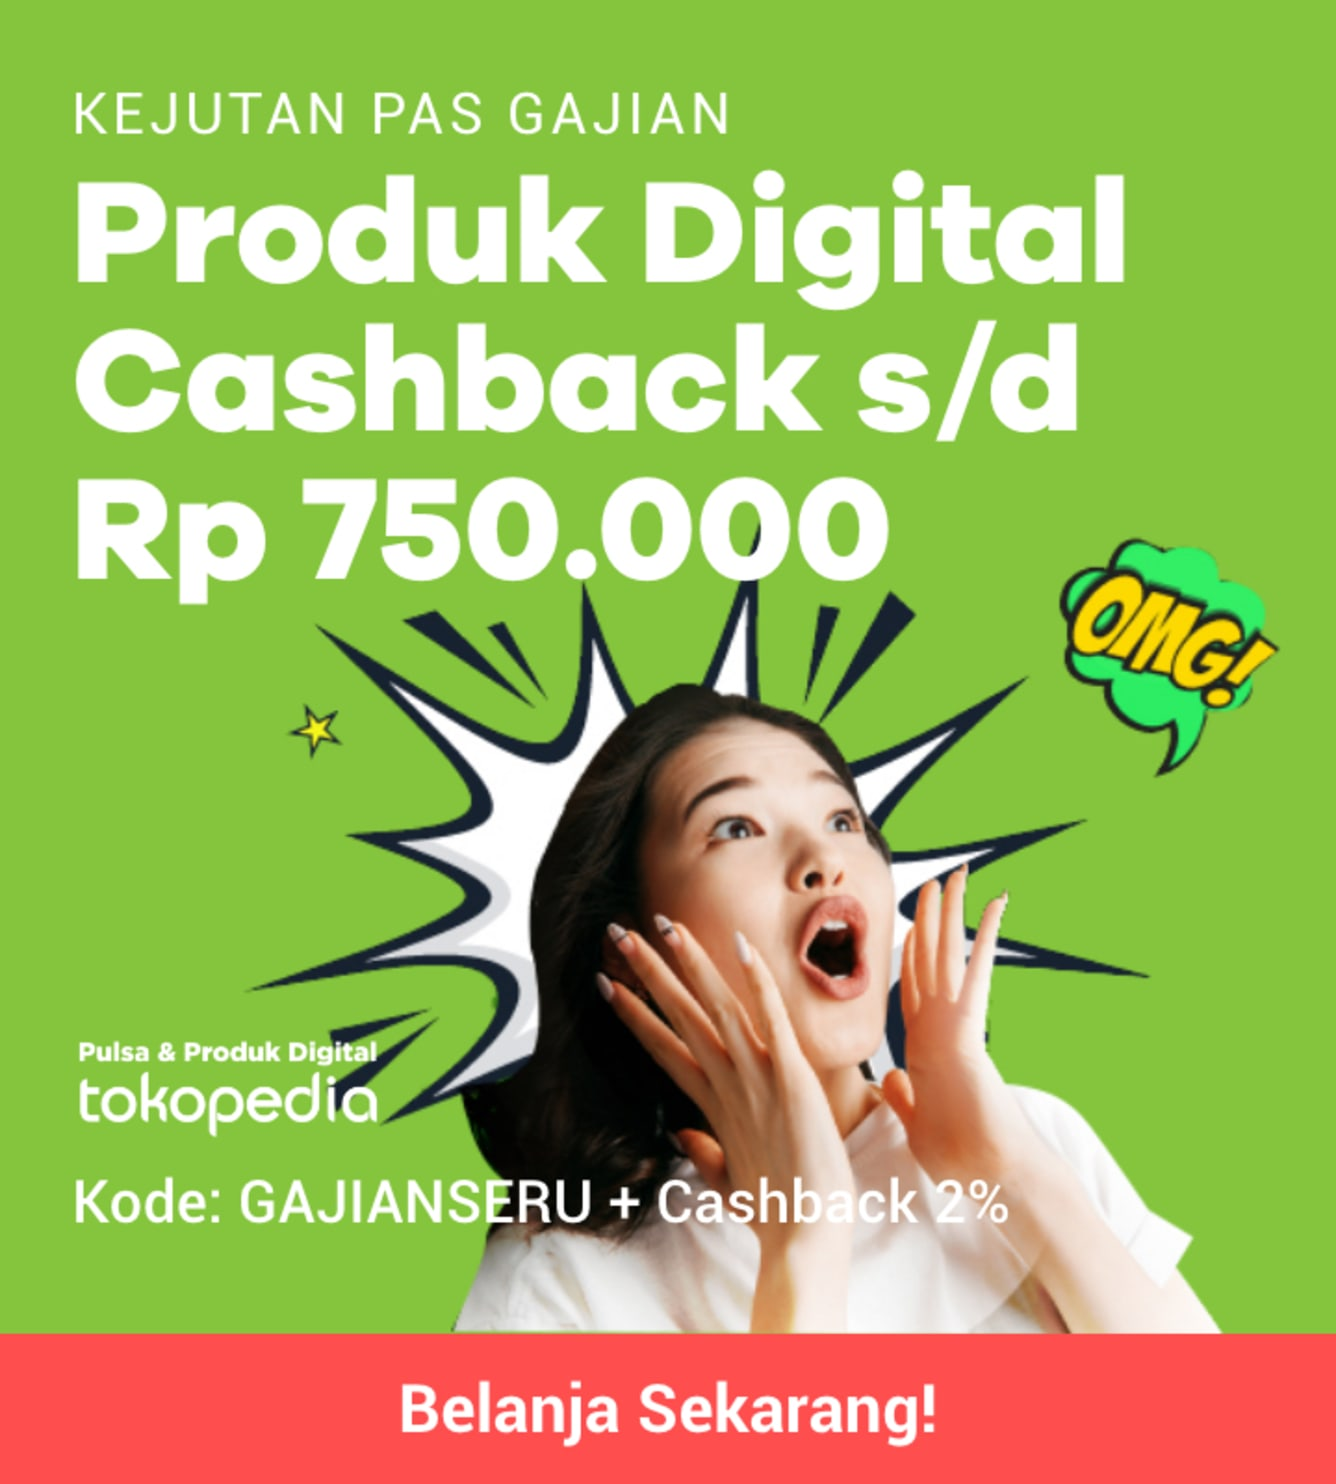 Week 17 - Promo Pulsa Tokopedia